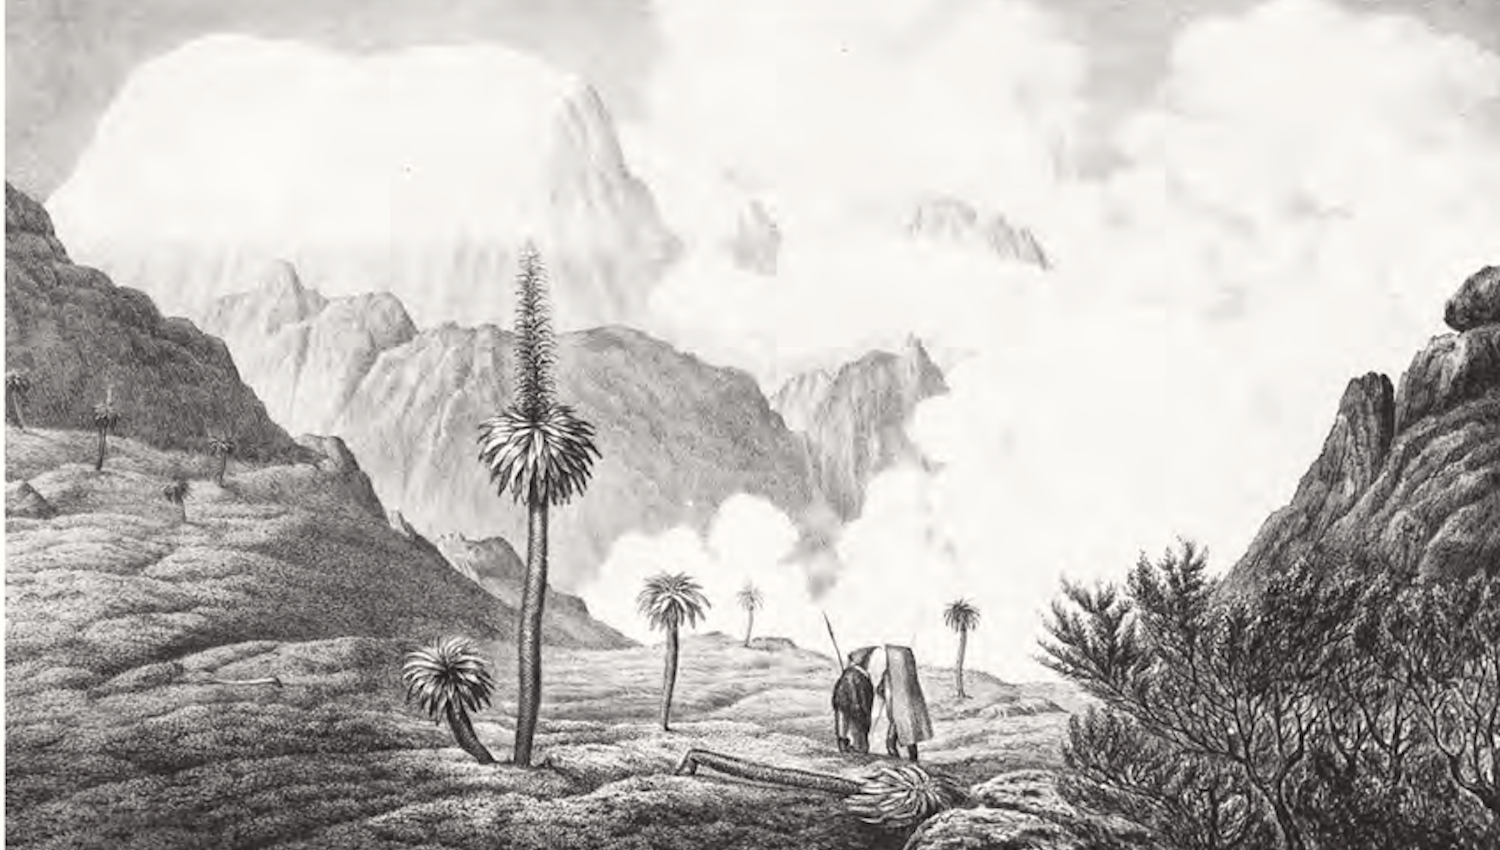 """Vegetation below the snow line at Mt. Selki in the Semien Province."" This drawing was made by F. C. Vogel after a sketch by Rüppell himself. See the work by Ib Friis, ""Travelling Among Fellow Christians (1768-1833): James Bruce, Henry Salt and Eduard Rüppell in Abyssinia,"" pages 161-194 in Scientia Danica, Series H, Humanistica (2013).****"